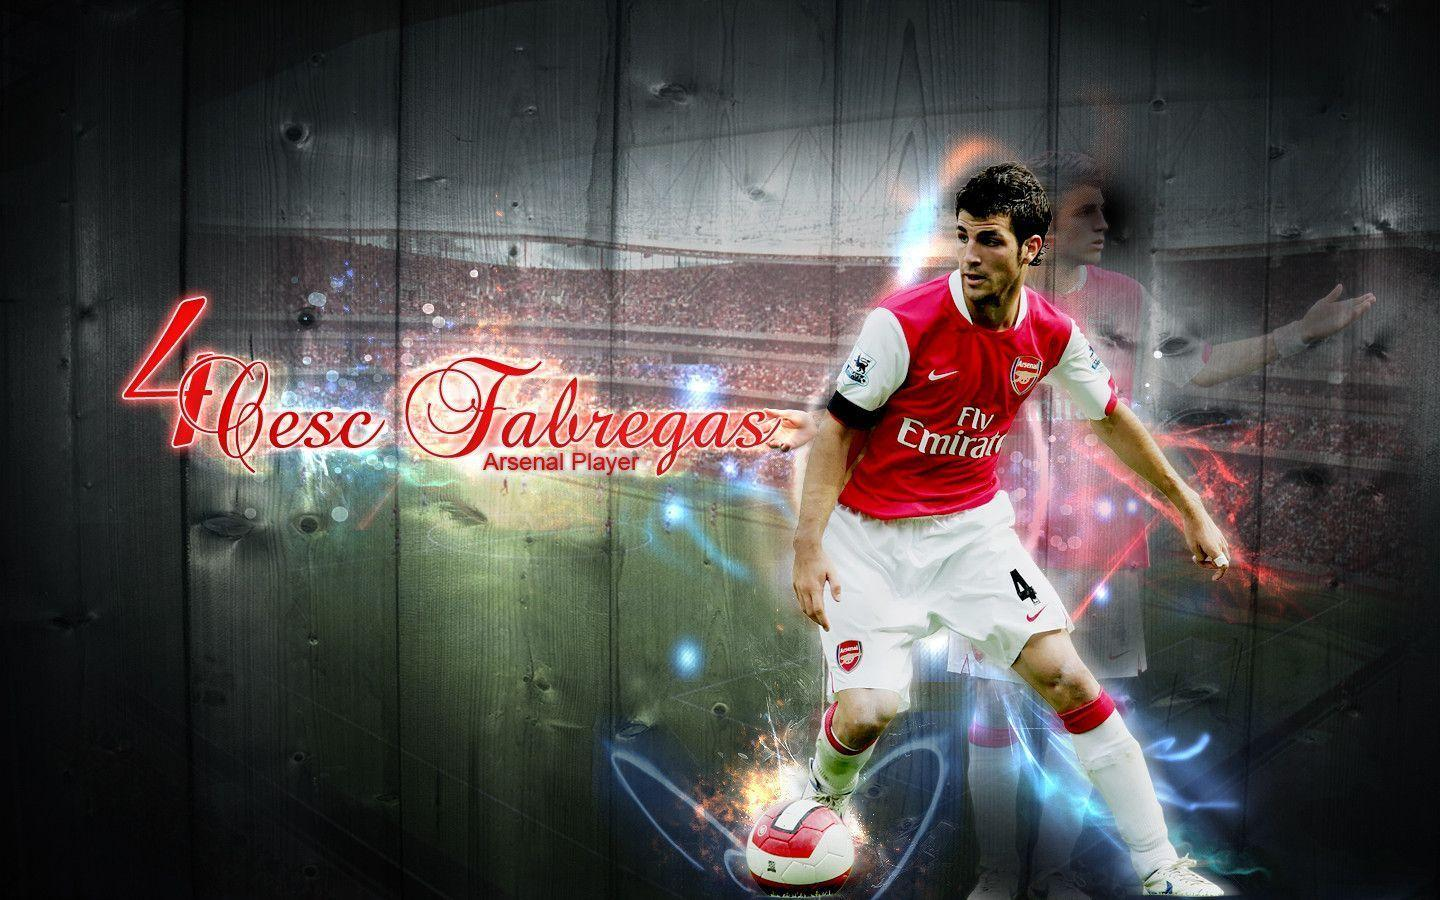 Fabregas Wallpapers - Wallpaper Cave